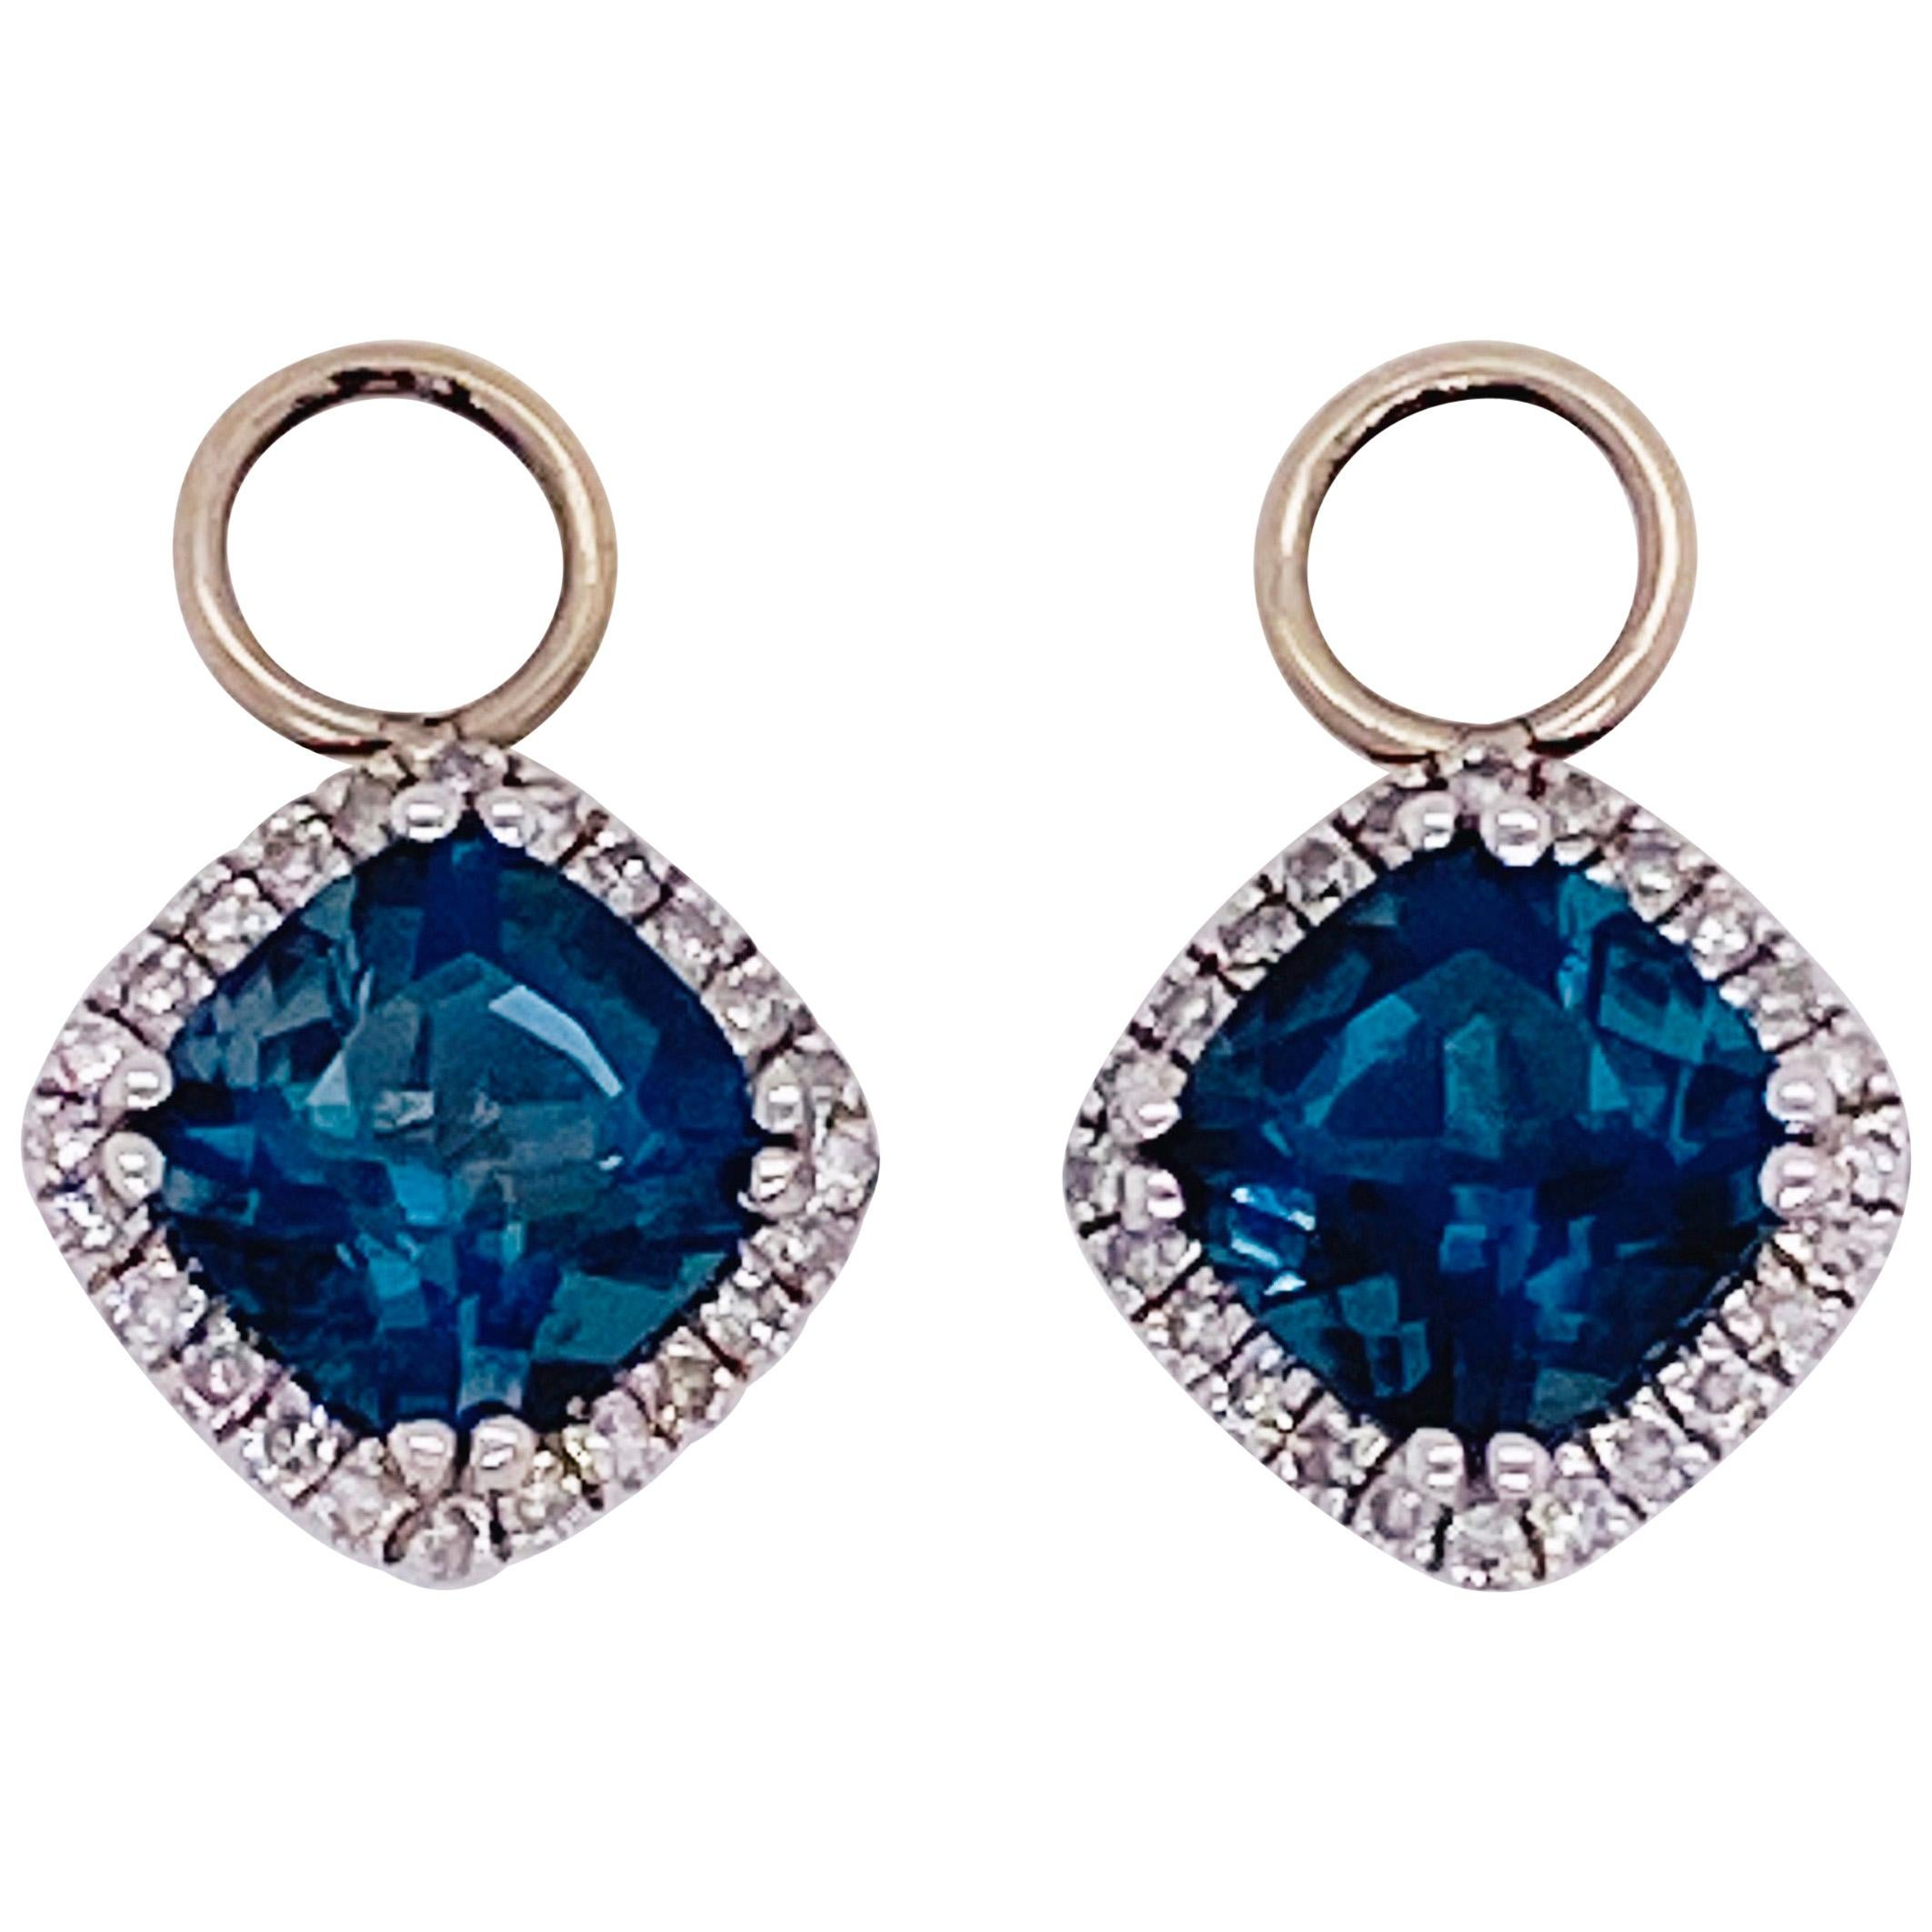 Topaz Diamond Earring Charms, 14k White Gold with Royal London Blue Topaz Hoops